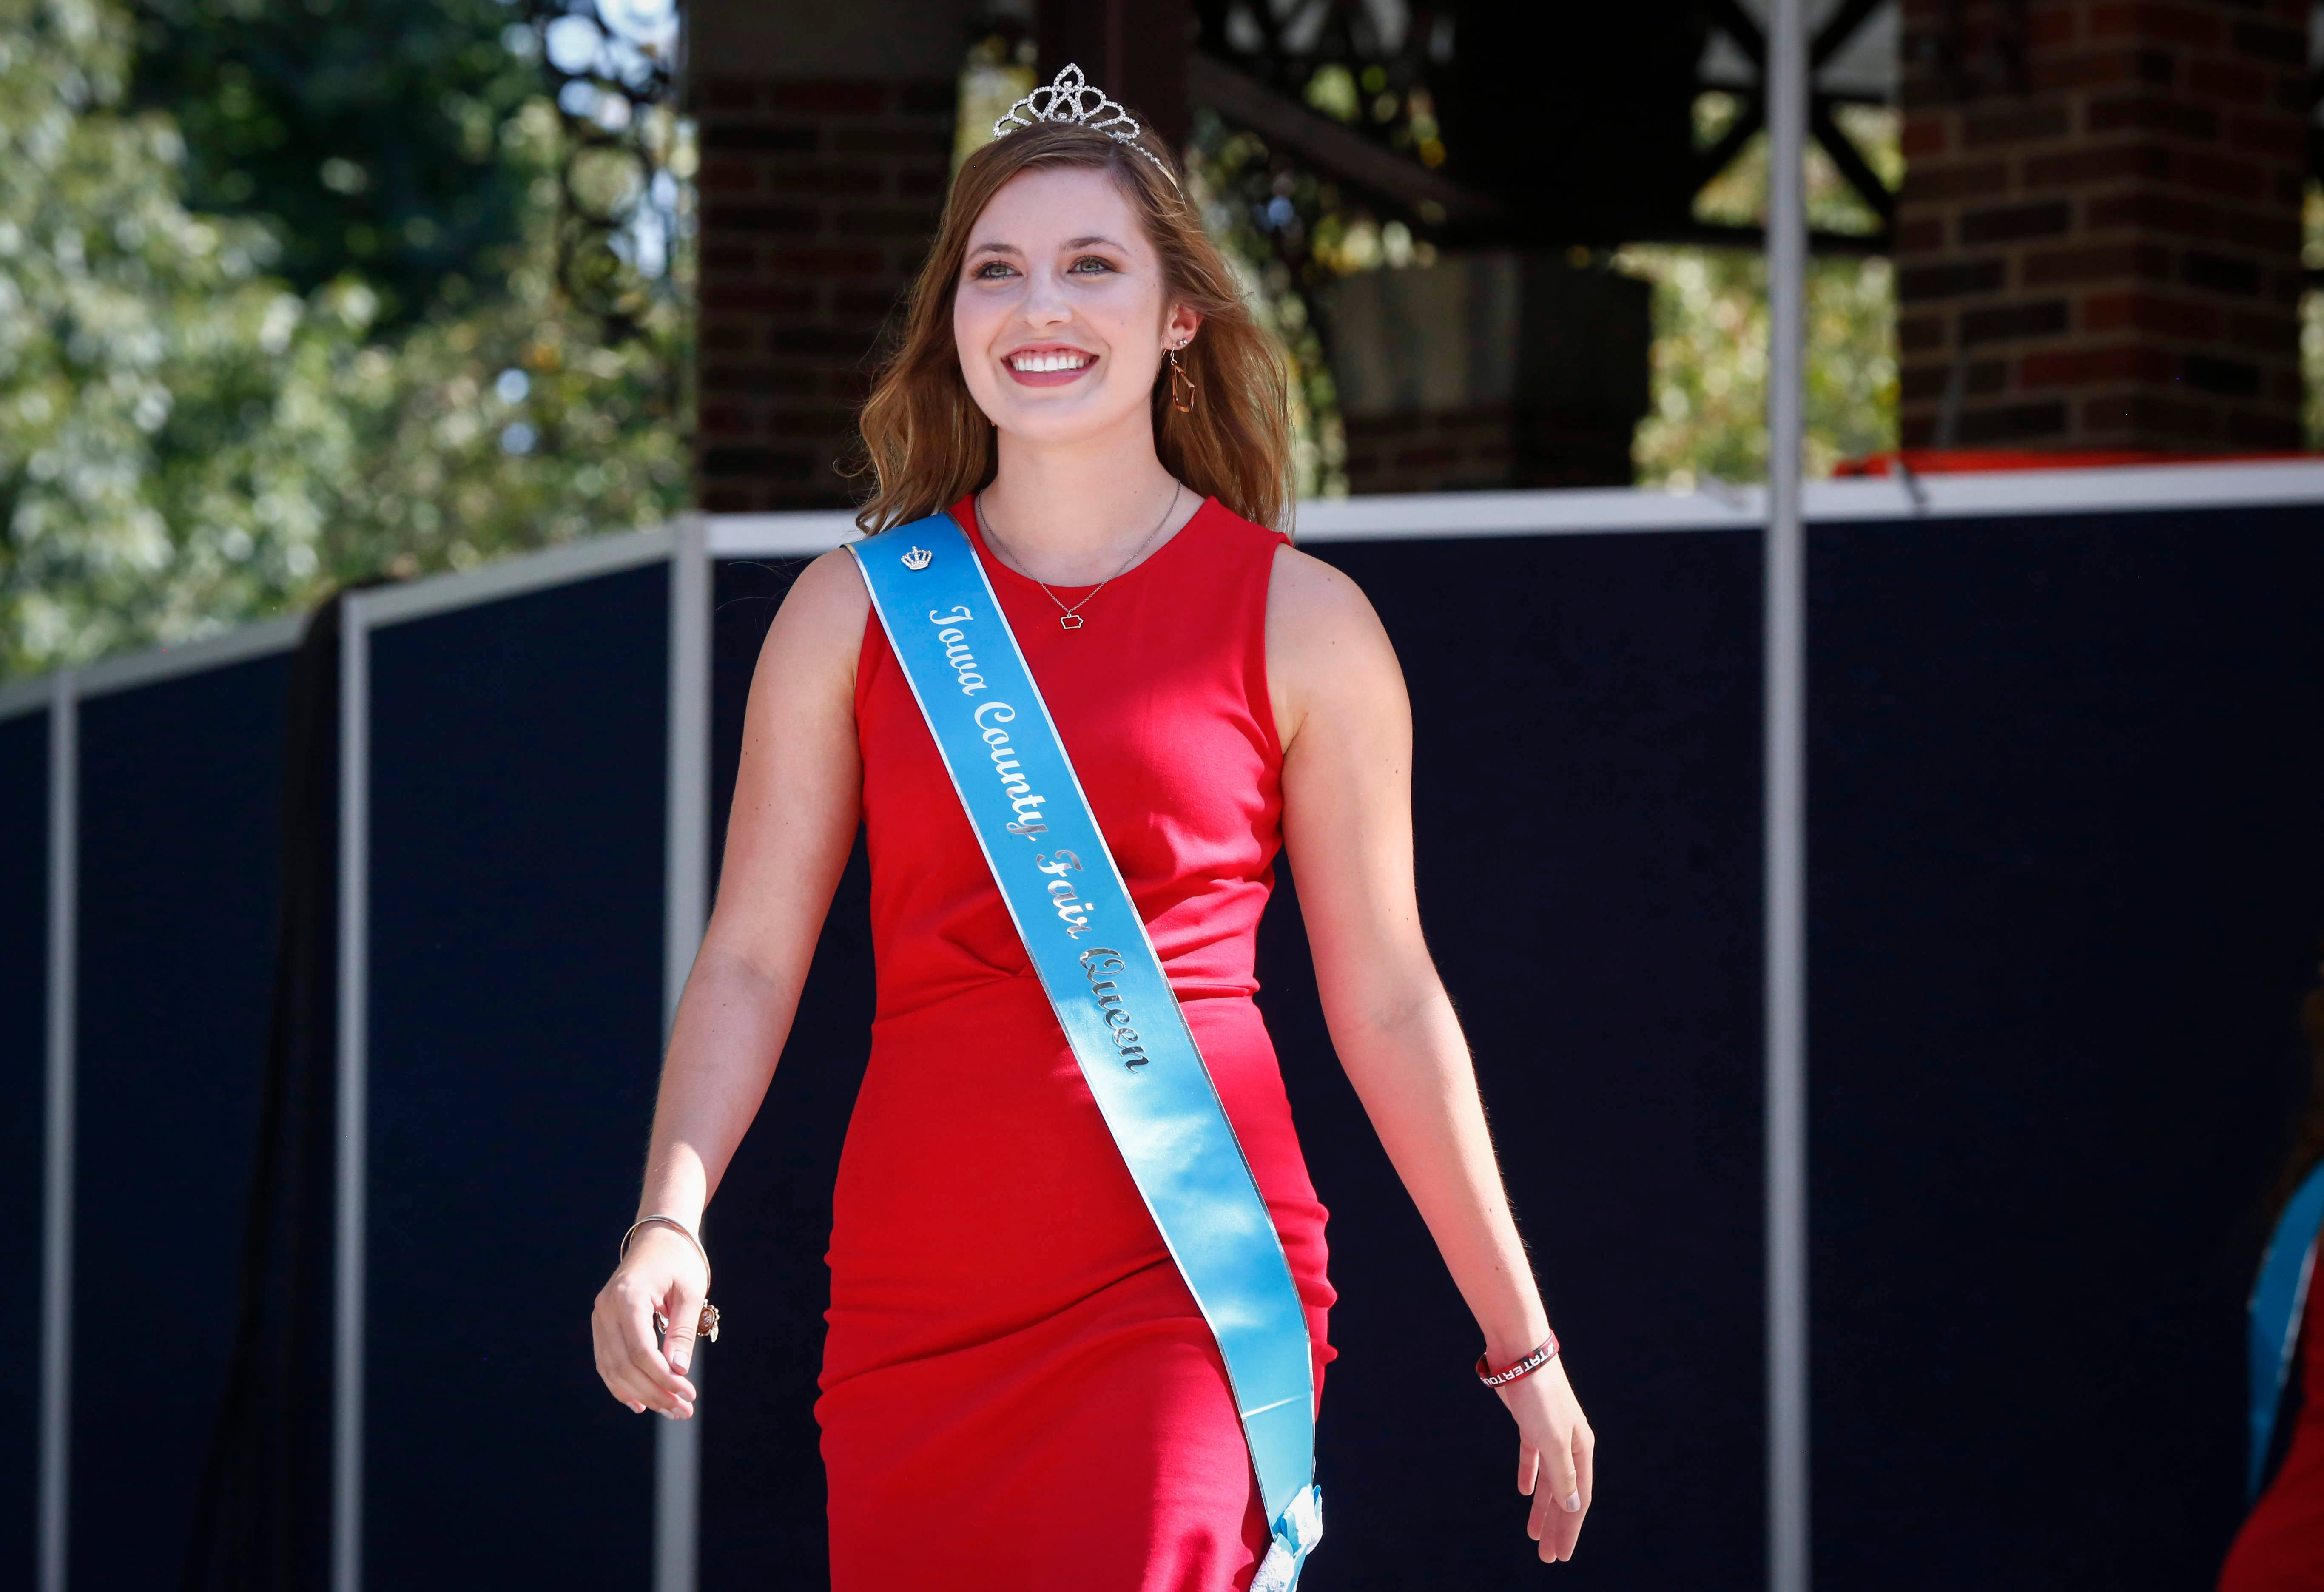 Iowa State Fair State Fair Queen Candidate Gives Away Her Winnings